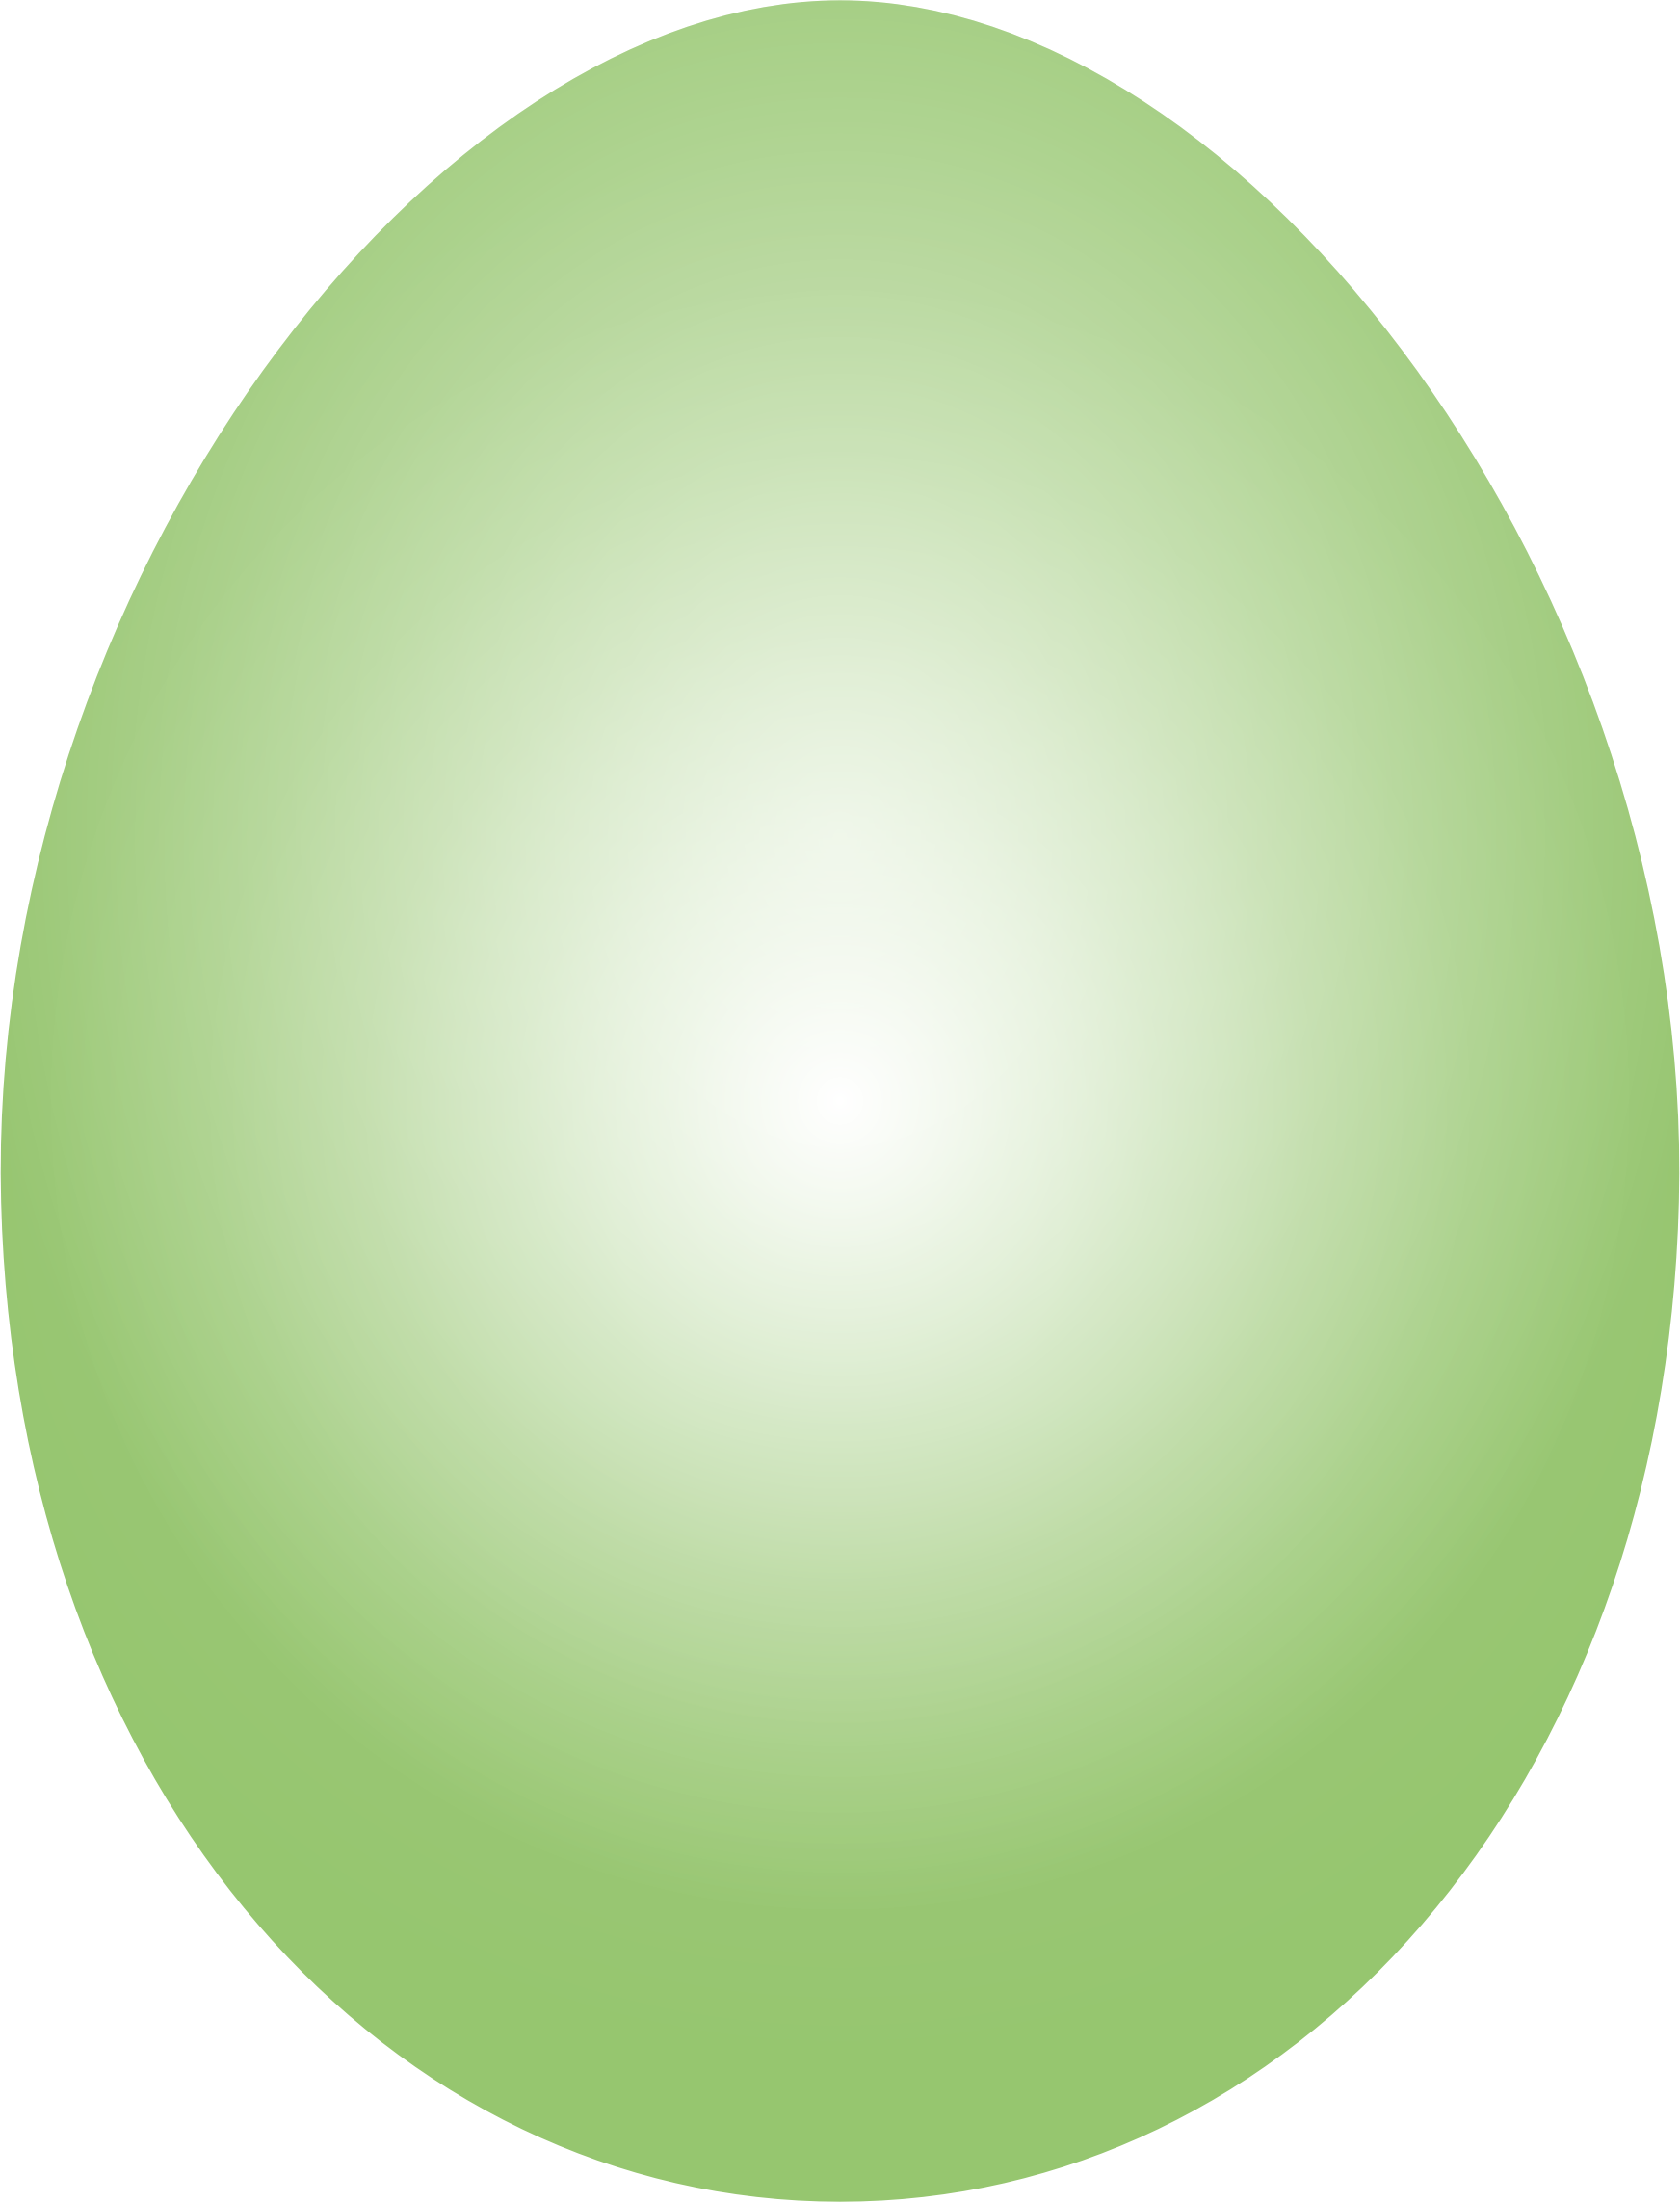 Lime Green Easter Egg by GDJ